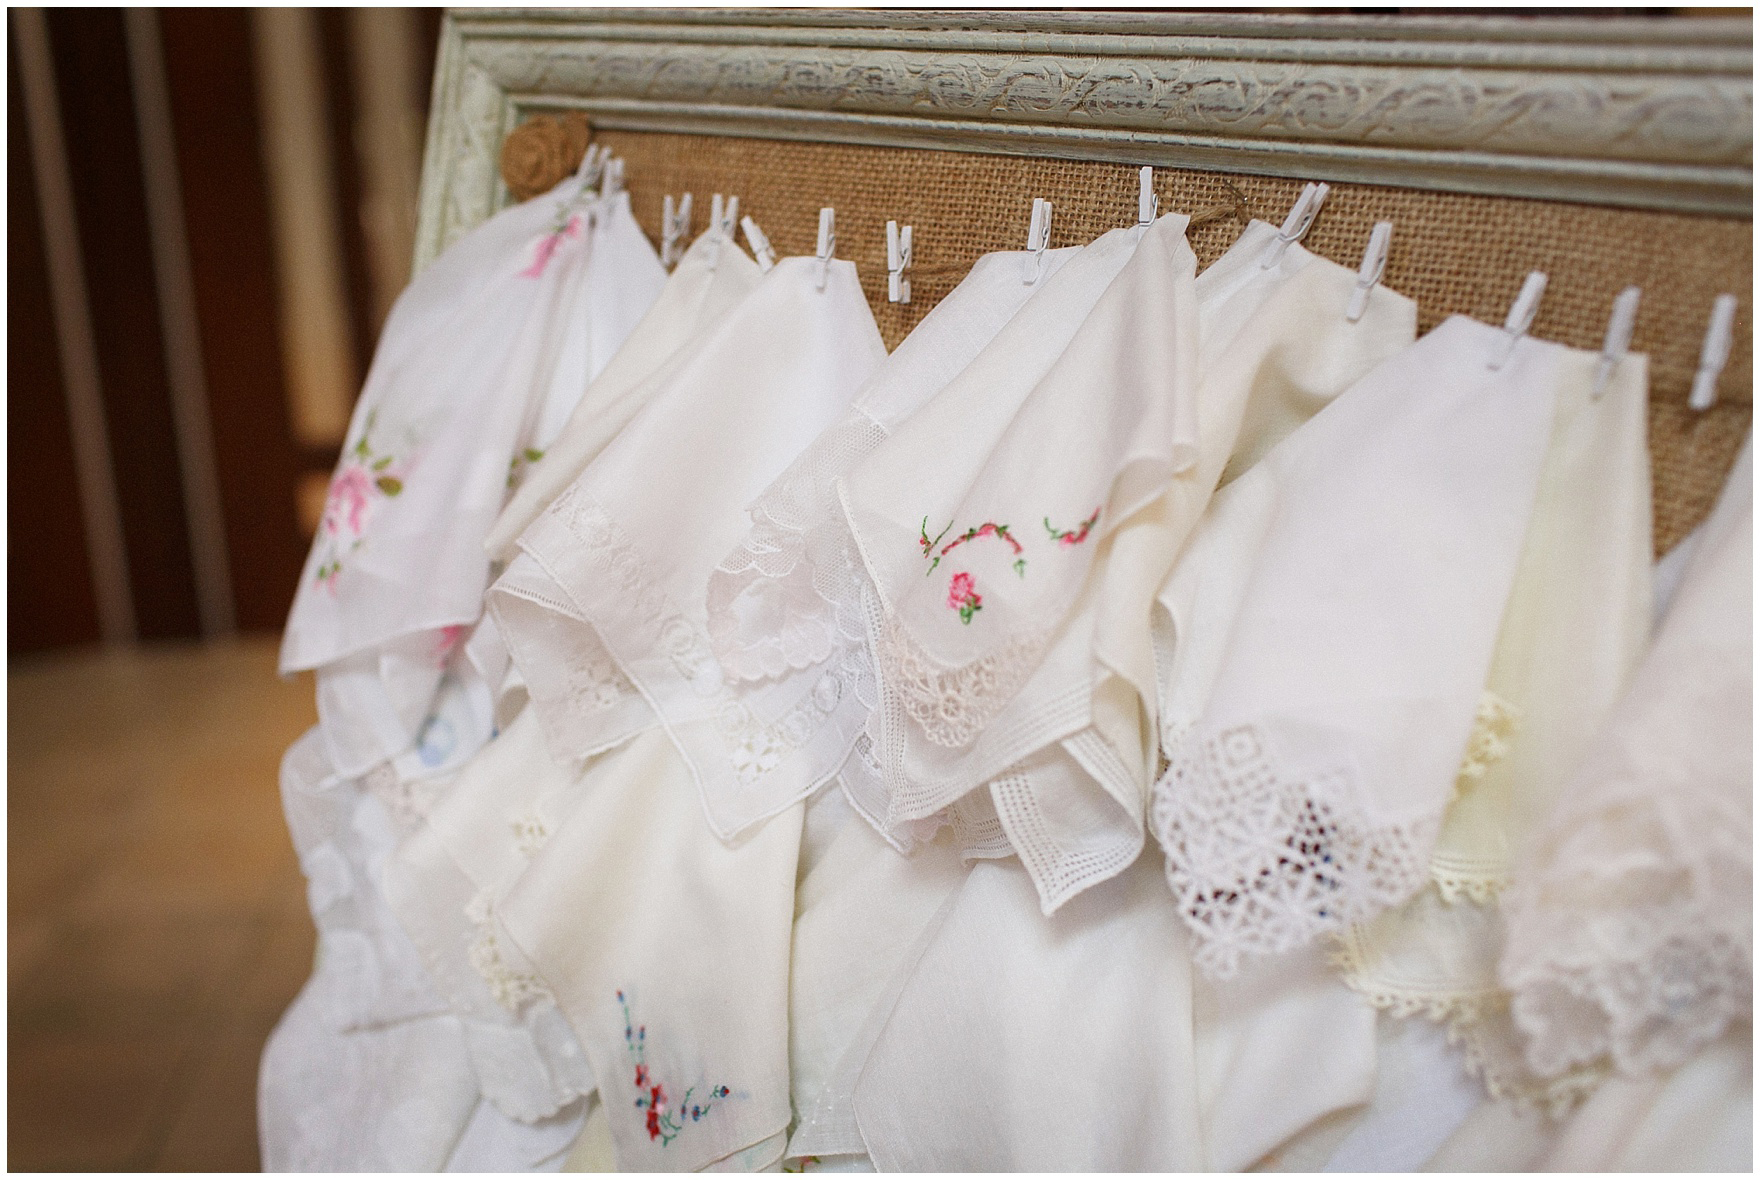 Vintage handkerchiefs are provided to guests during the ceremony at St. Anne's Catholic Community, for a Biltmore Country Club Barrington wedding.